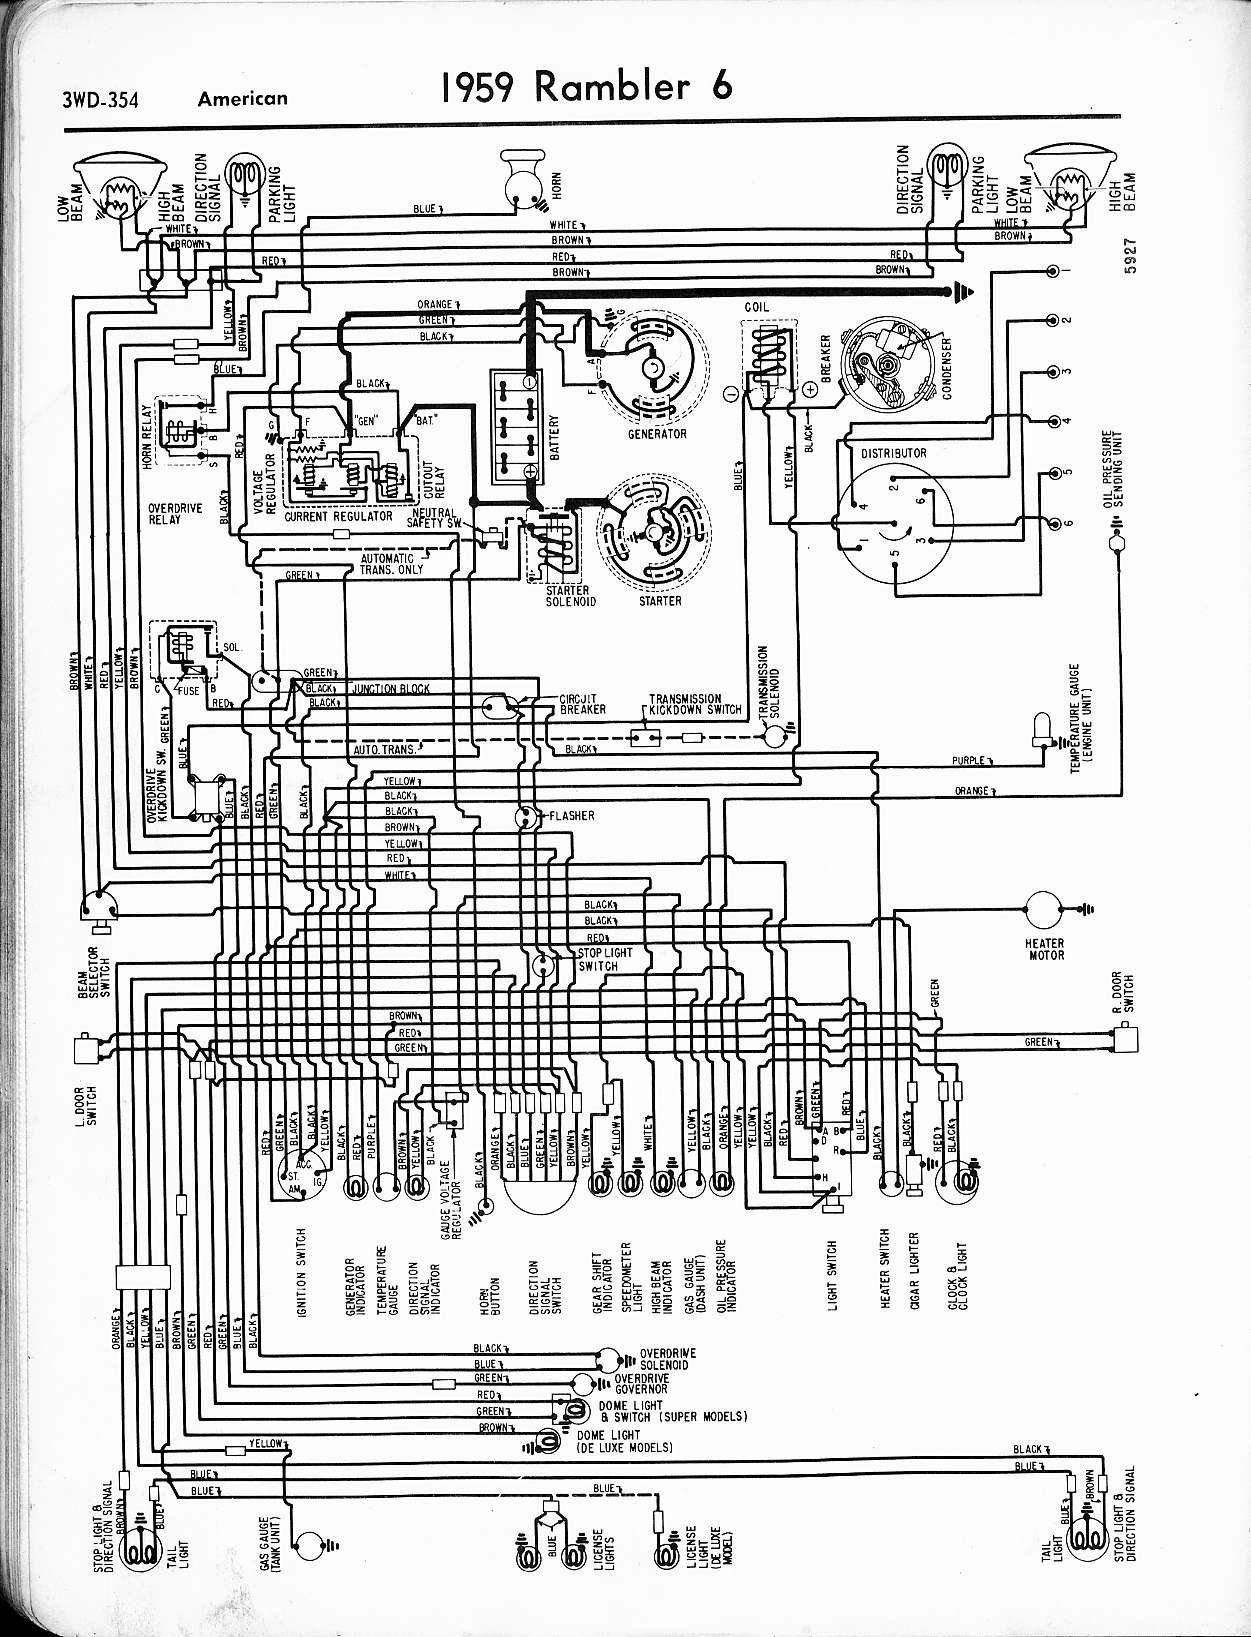 honda valkyrie fuse box best wiring library Honda Valkyrie Engine honda valkyrie wiring diagram wiring diagram hub honda goldwing engine honda valkyrie wiring diagram